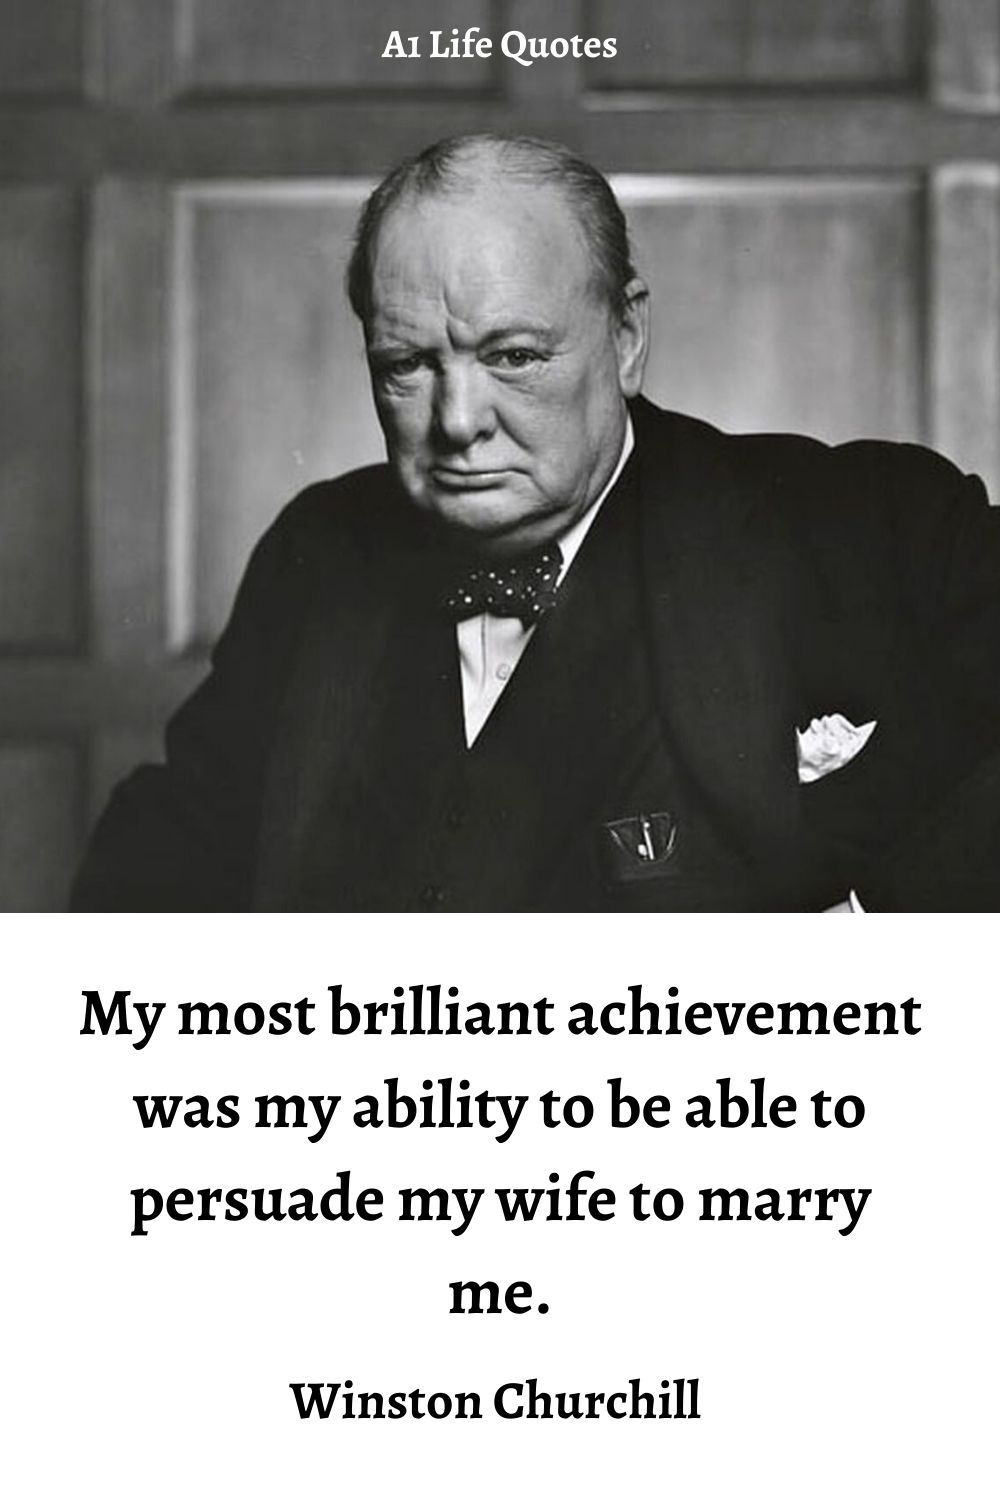 sir winston churchill quotes